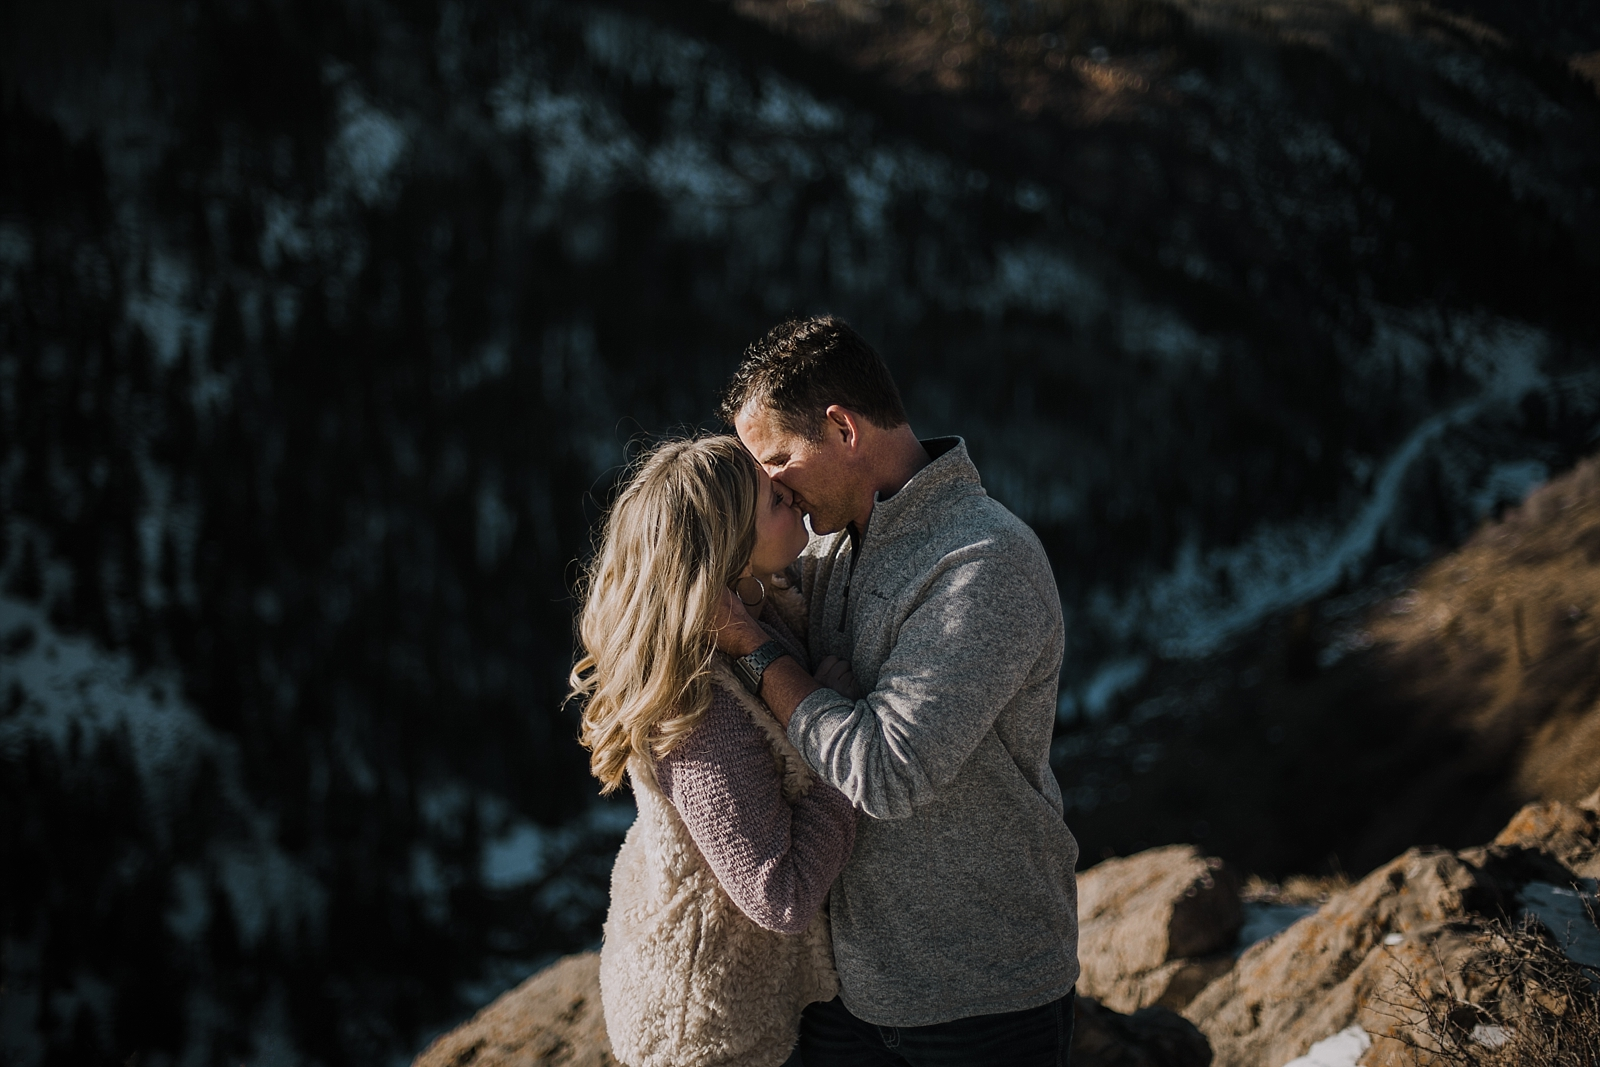 couple on cliffside, colorado hiking engagements, adventurous colorado engagements, adventurous colorado wedding photographer, red cliff wedding photographer, leadville wedding photographer